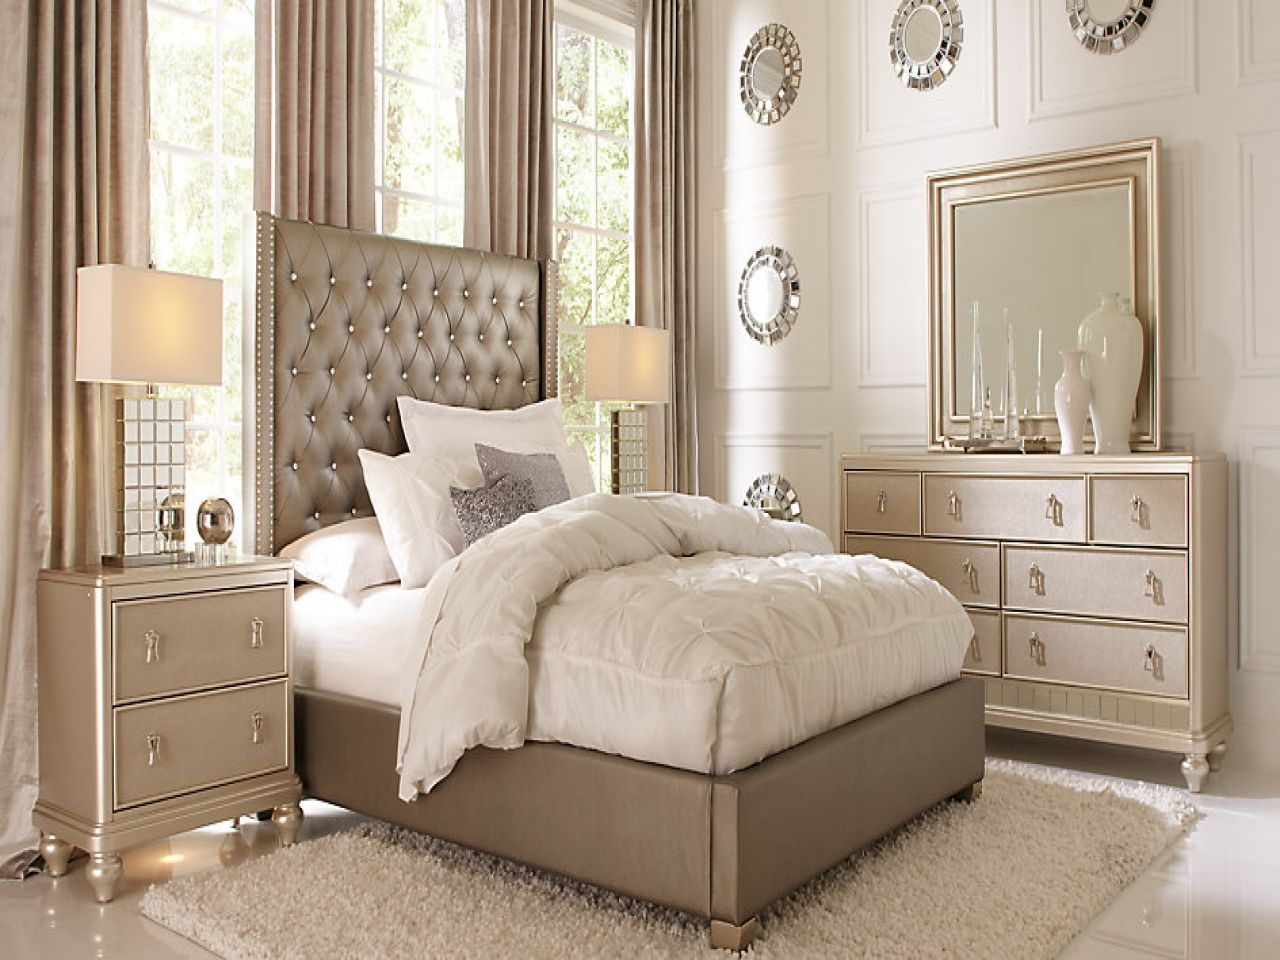 60 Rooms To Go King Size Bedroom Sets New HD